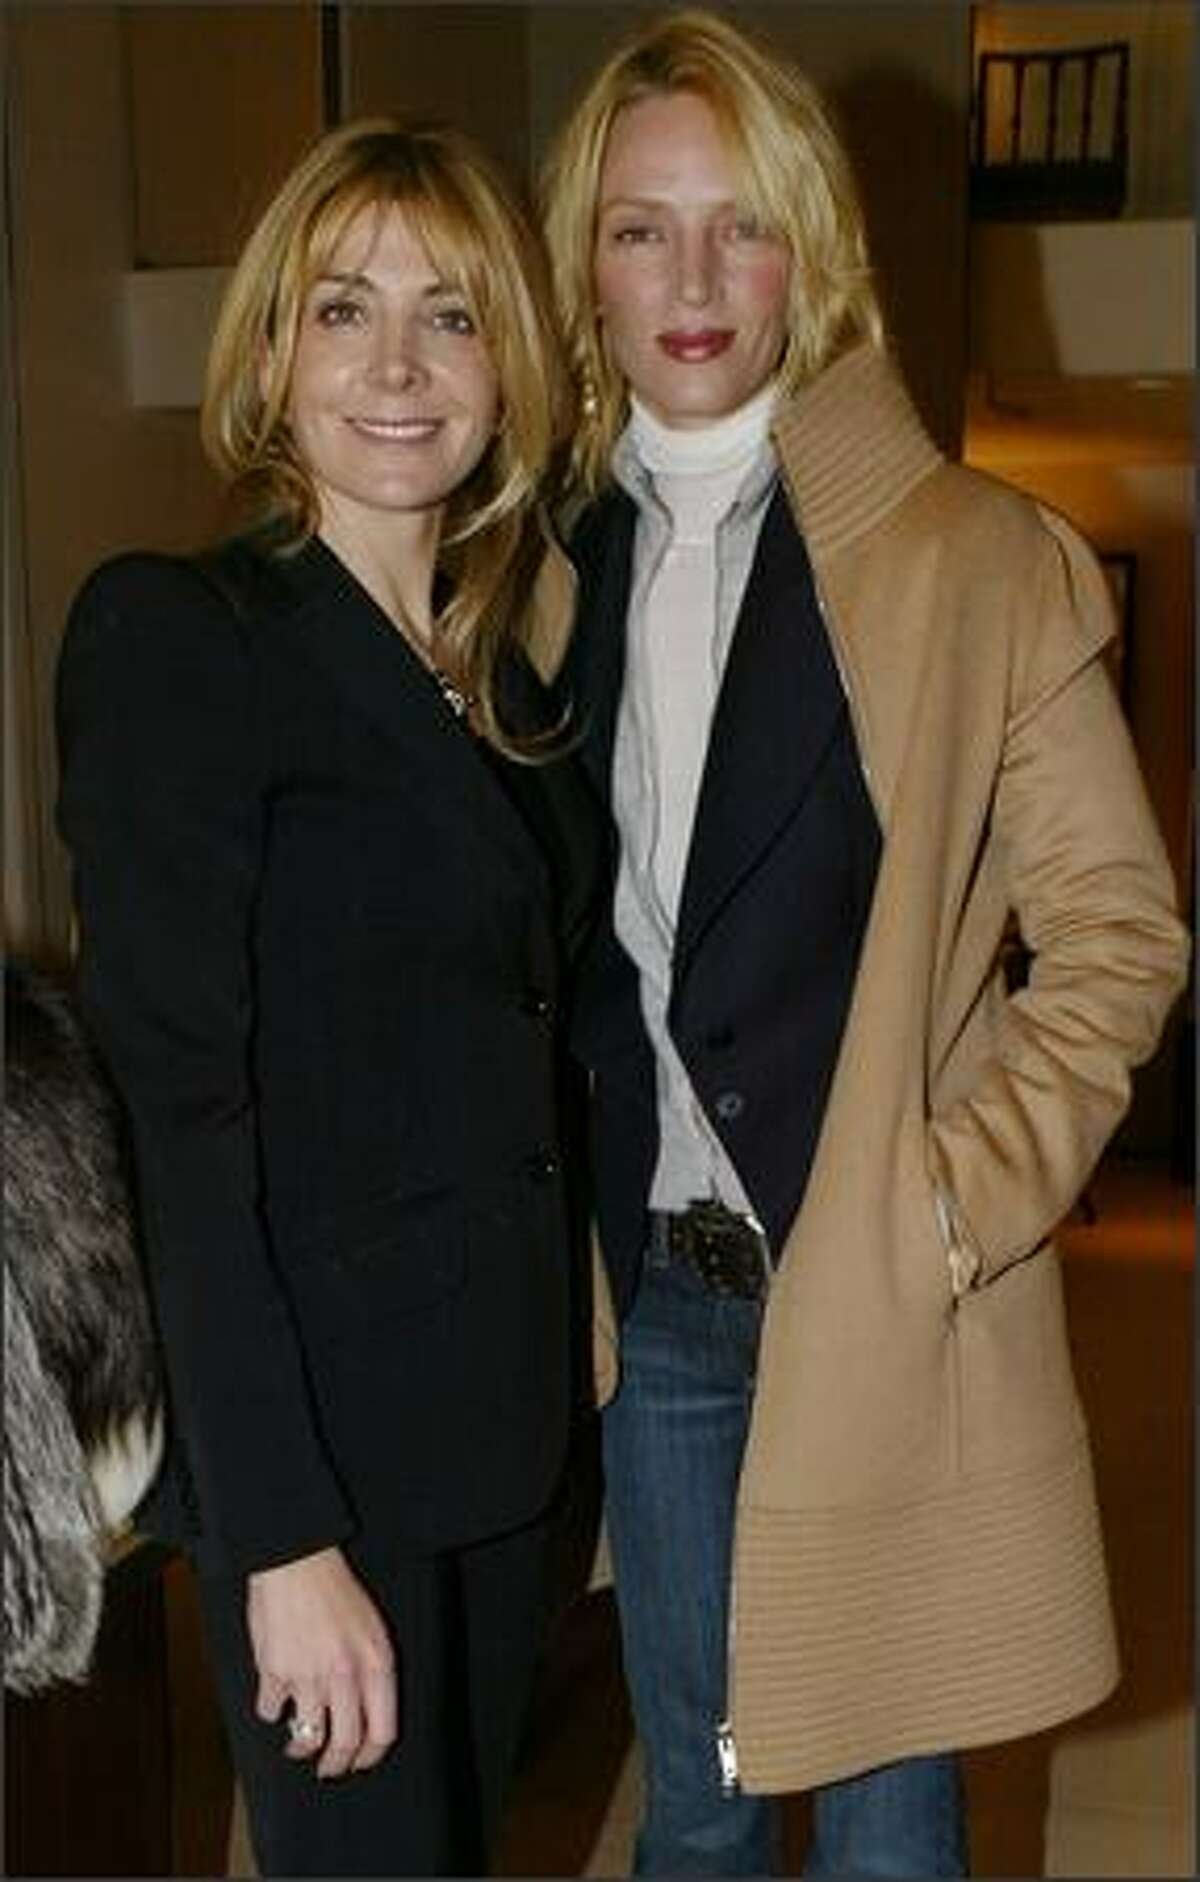 Actresses Natasha Richardson and Uma Thurman attend the opening of the Asprey Flagship Store on Fifth Avenue in New York, Dec. 8, 2003.